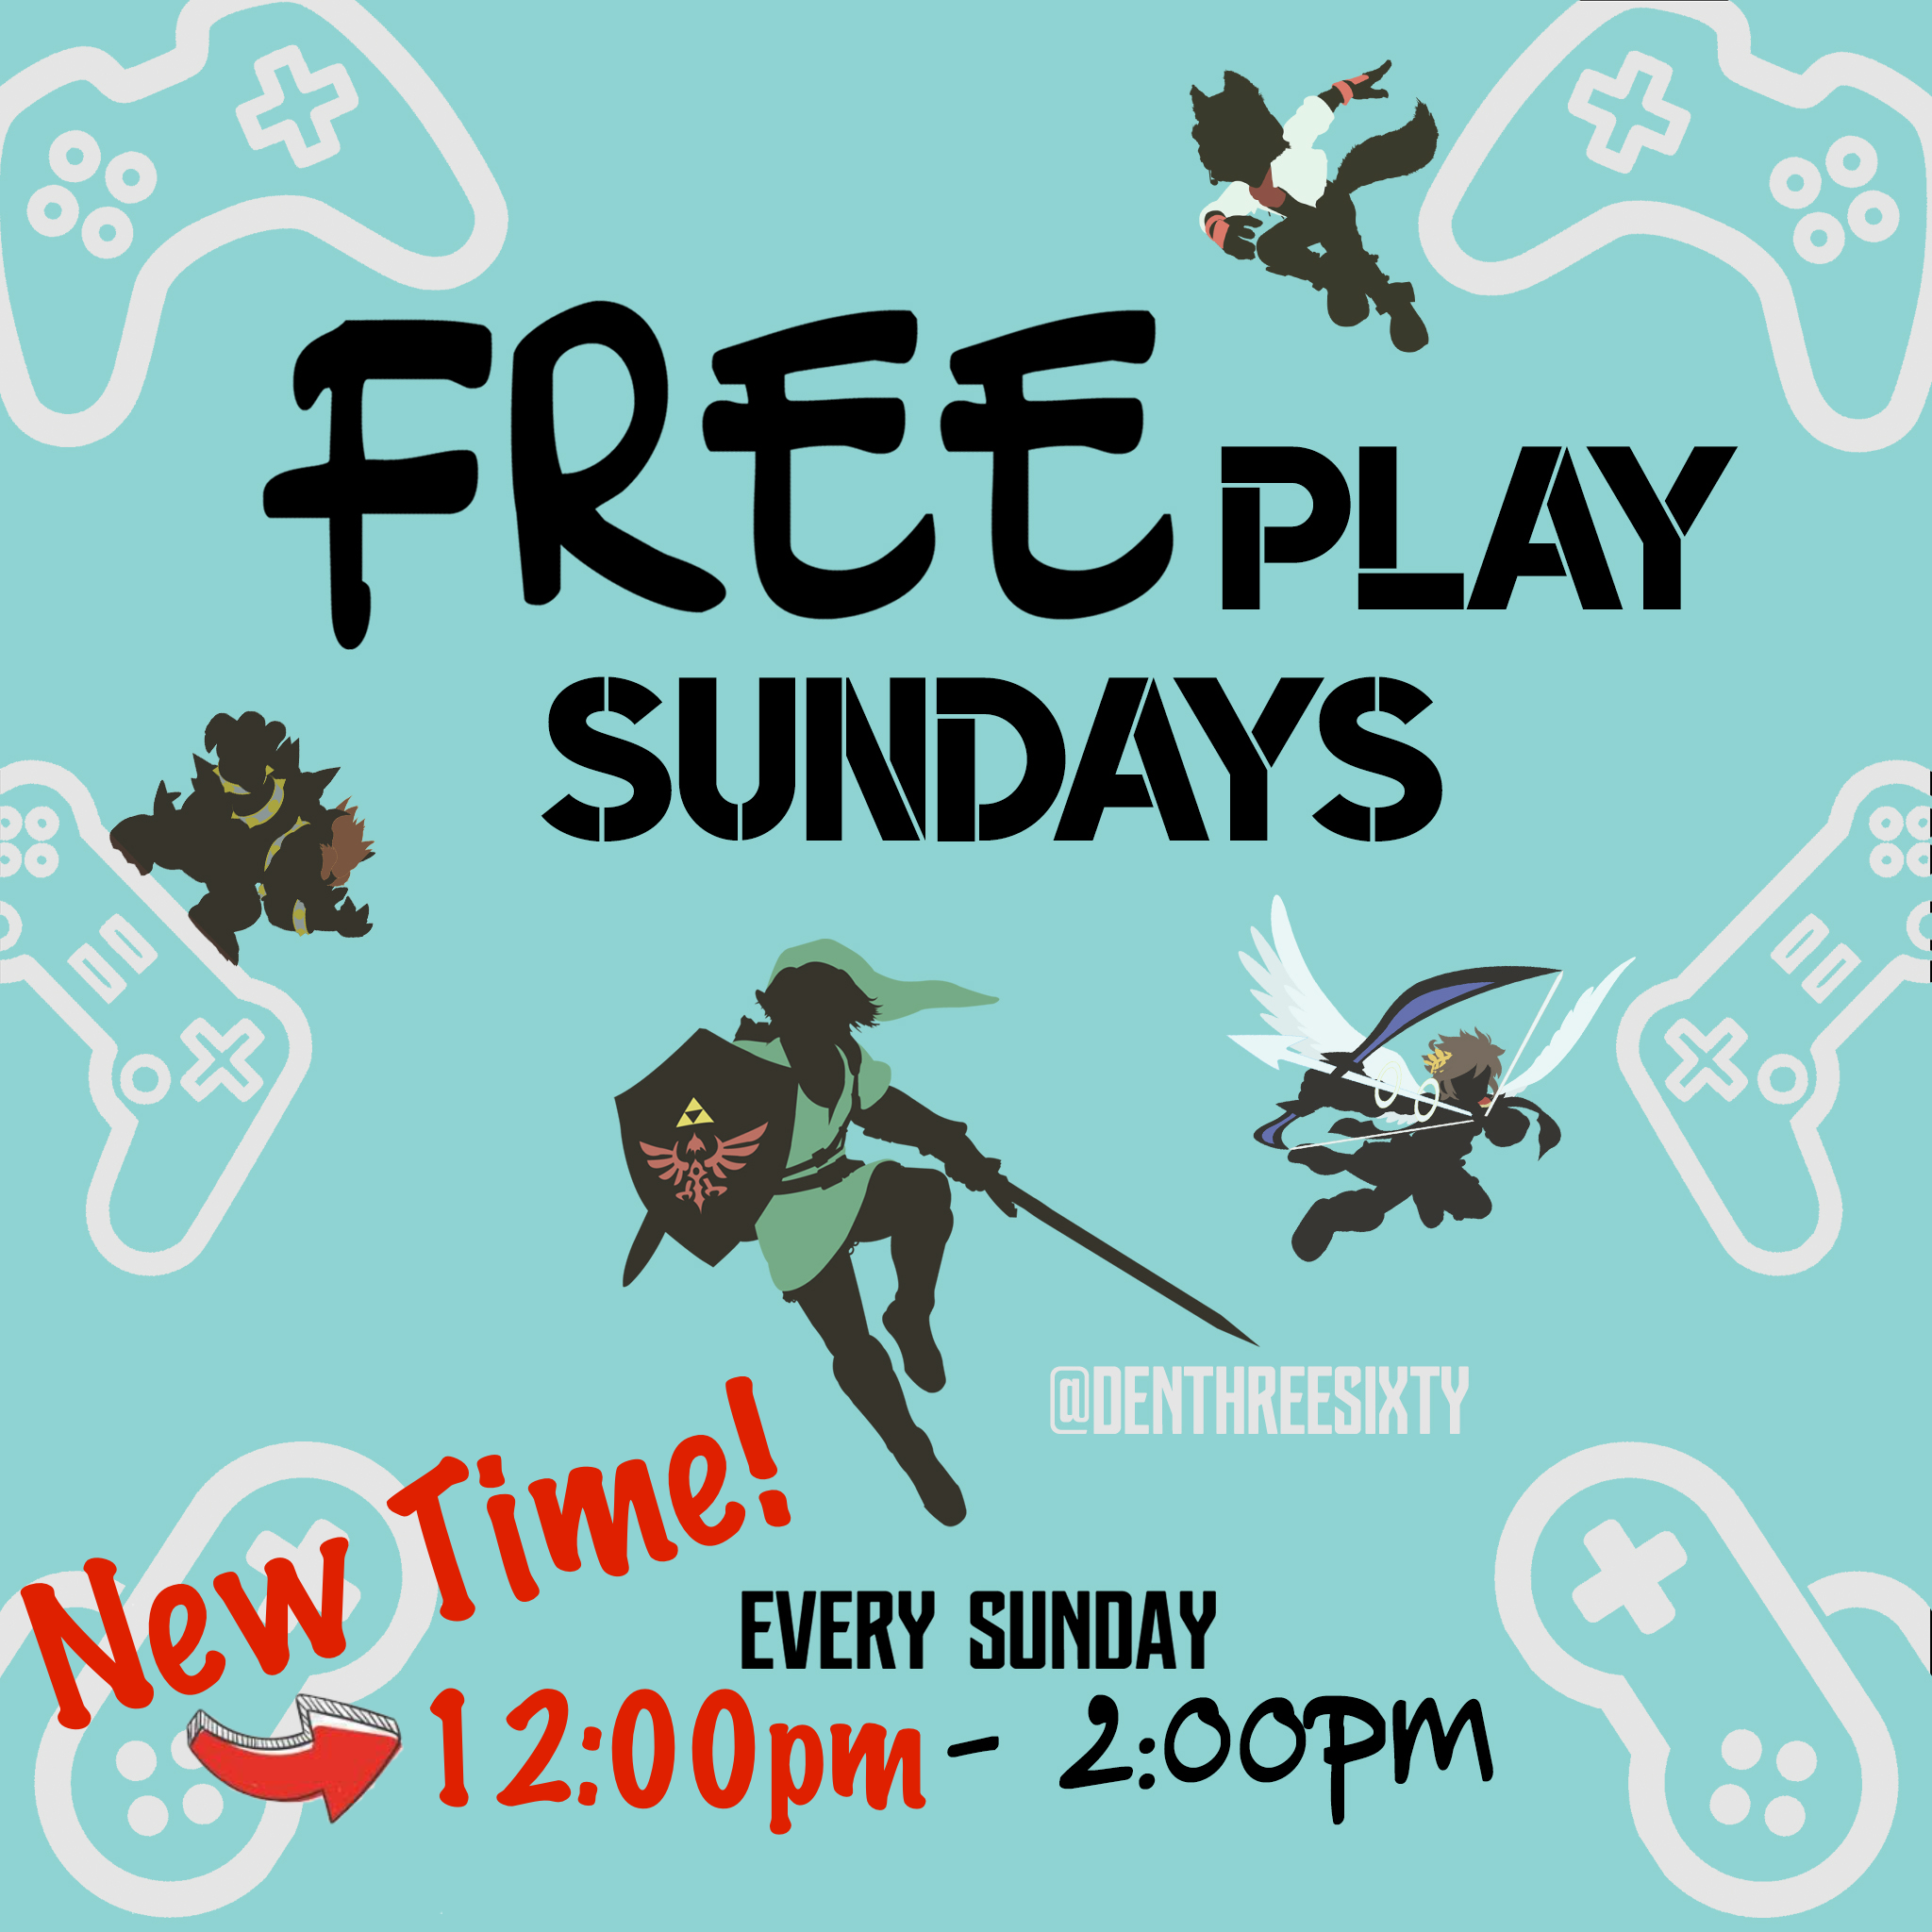 Free Play Sunday SQUARE new.png